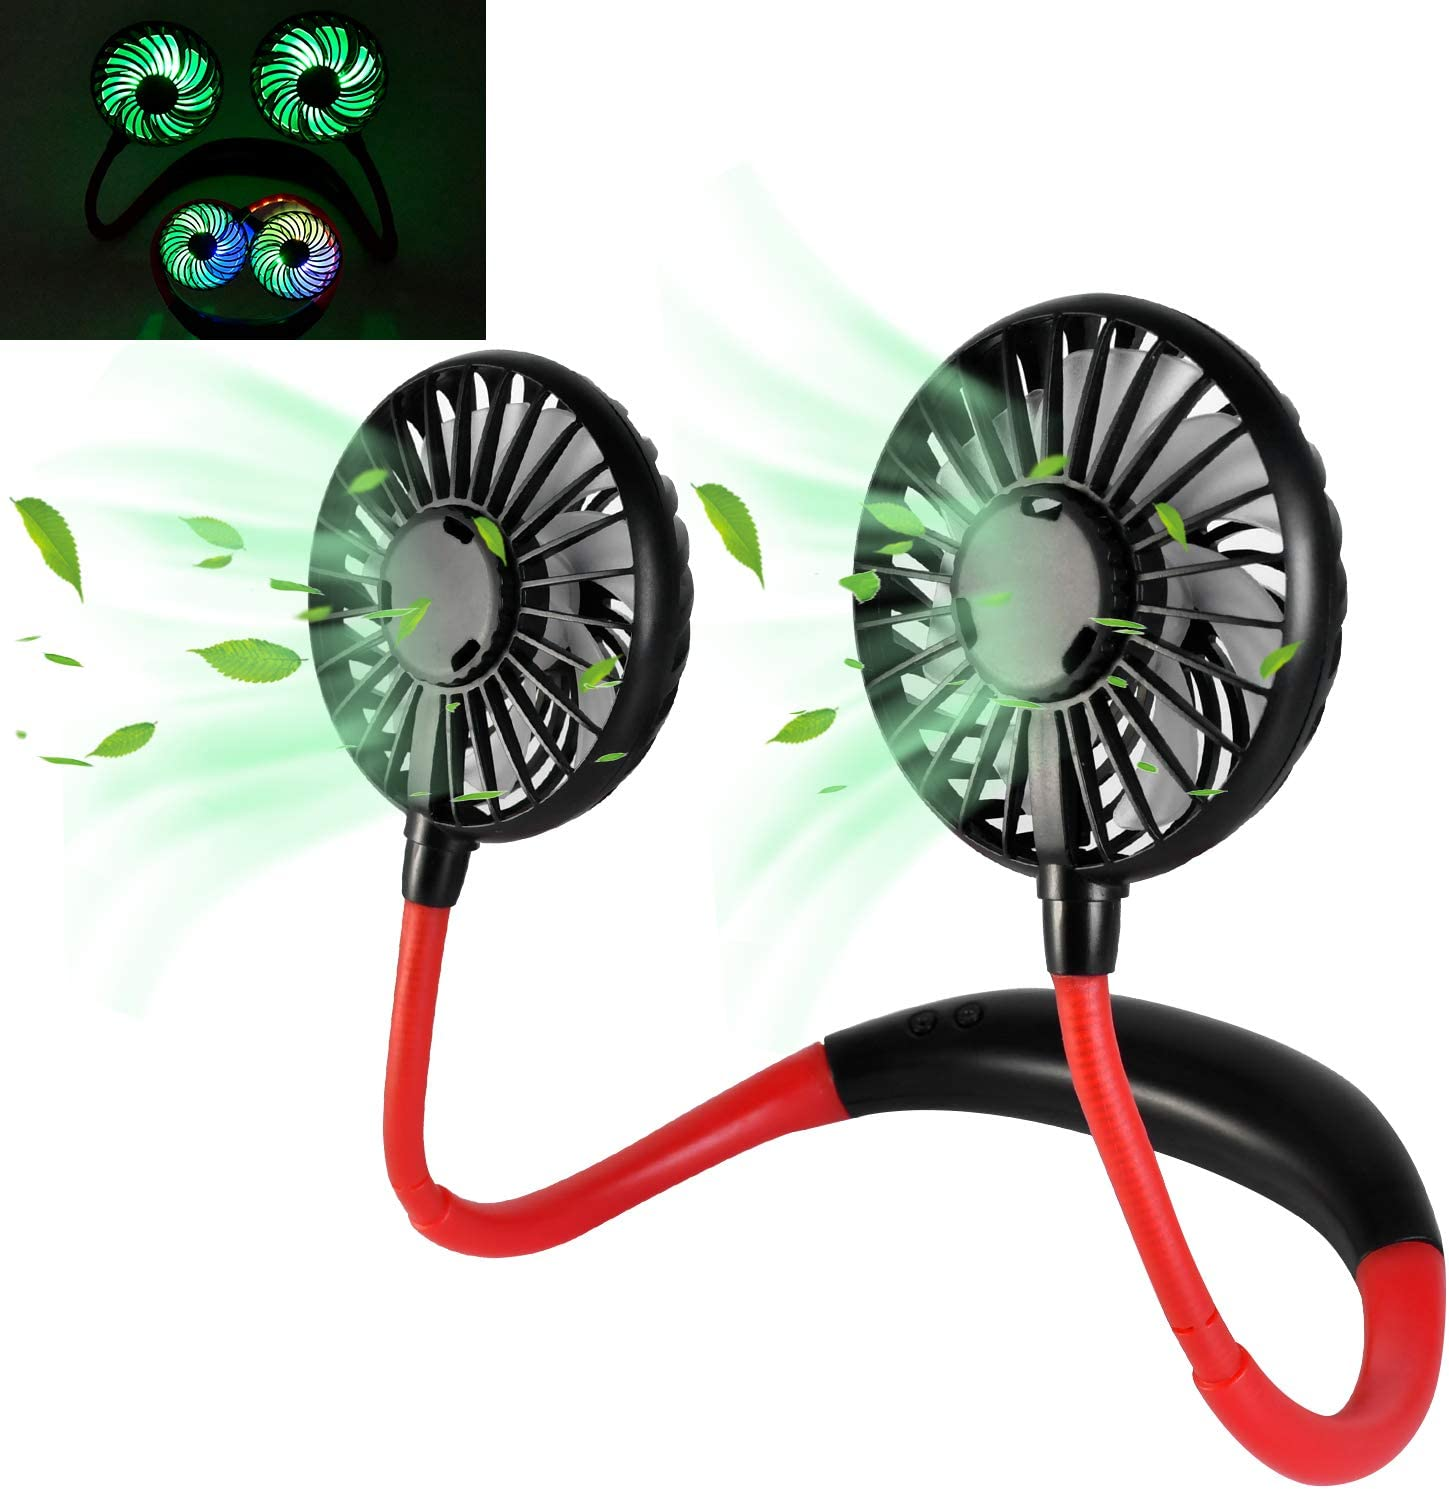 RioGree USB Neck Fan for necklace Mini LED Lighting Wearable Sport Portable Hand Free Personal Hanging Desktop 3 Speed Controller Rechargeable 360 Degree Adjustment for Home Office Outdoor Travel - Black